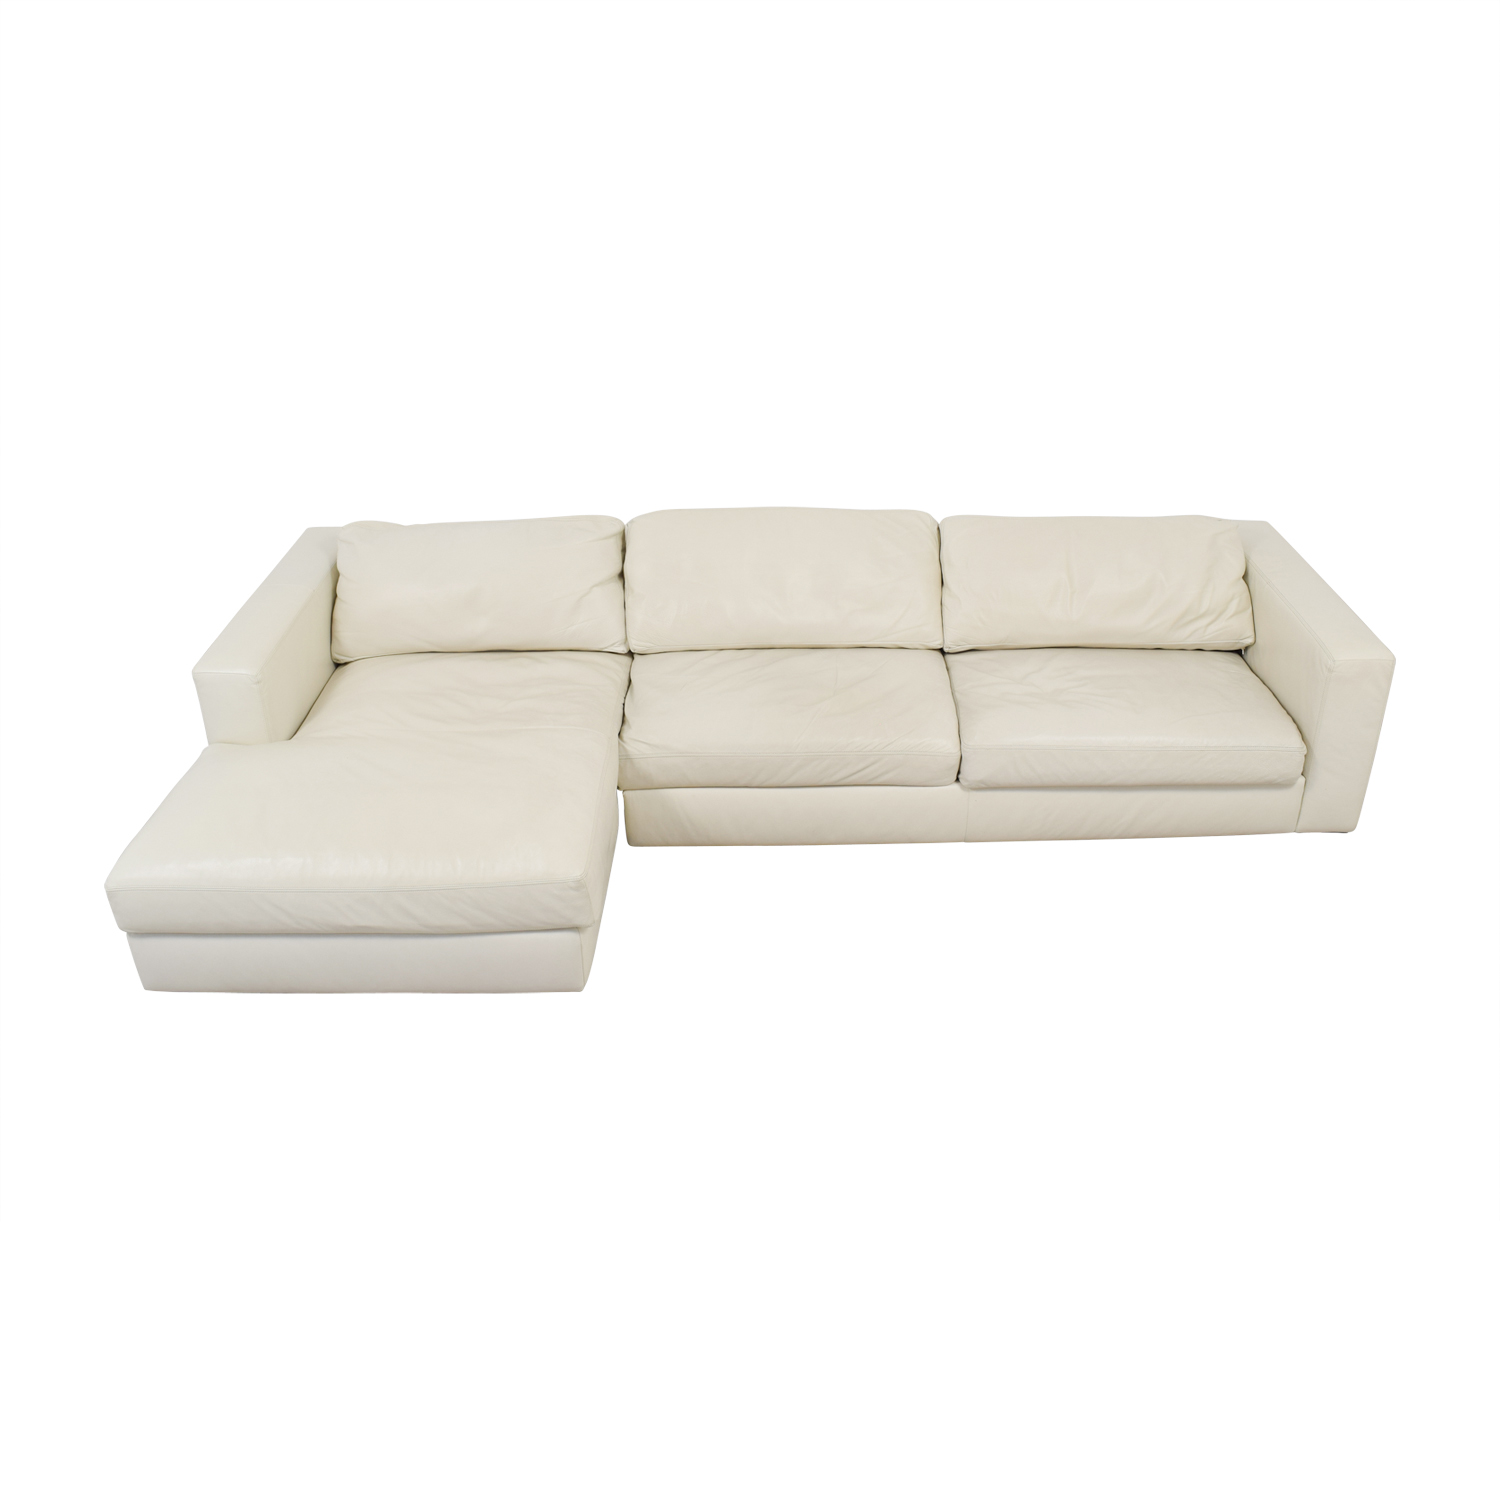 Design Within Reach Design Within Reach by Jeffrey Bernett Reid White Left Chaise Sectional second hand